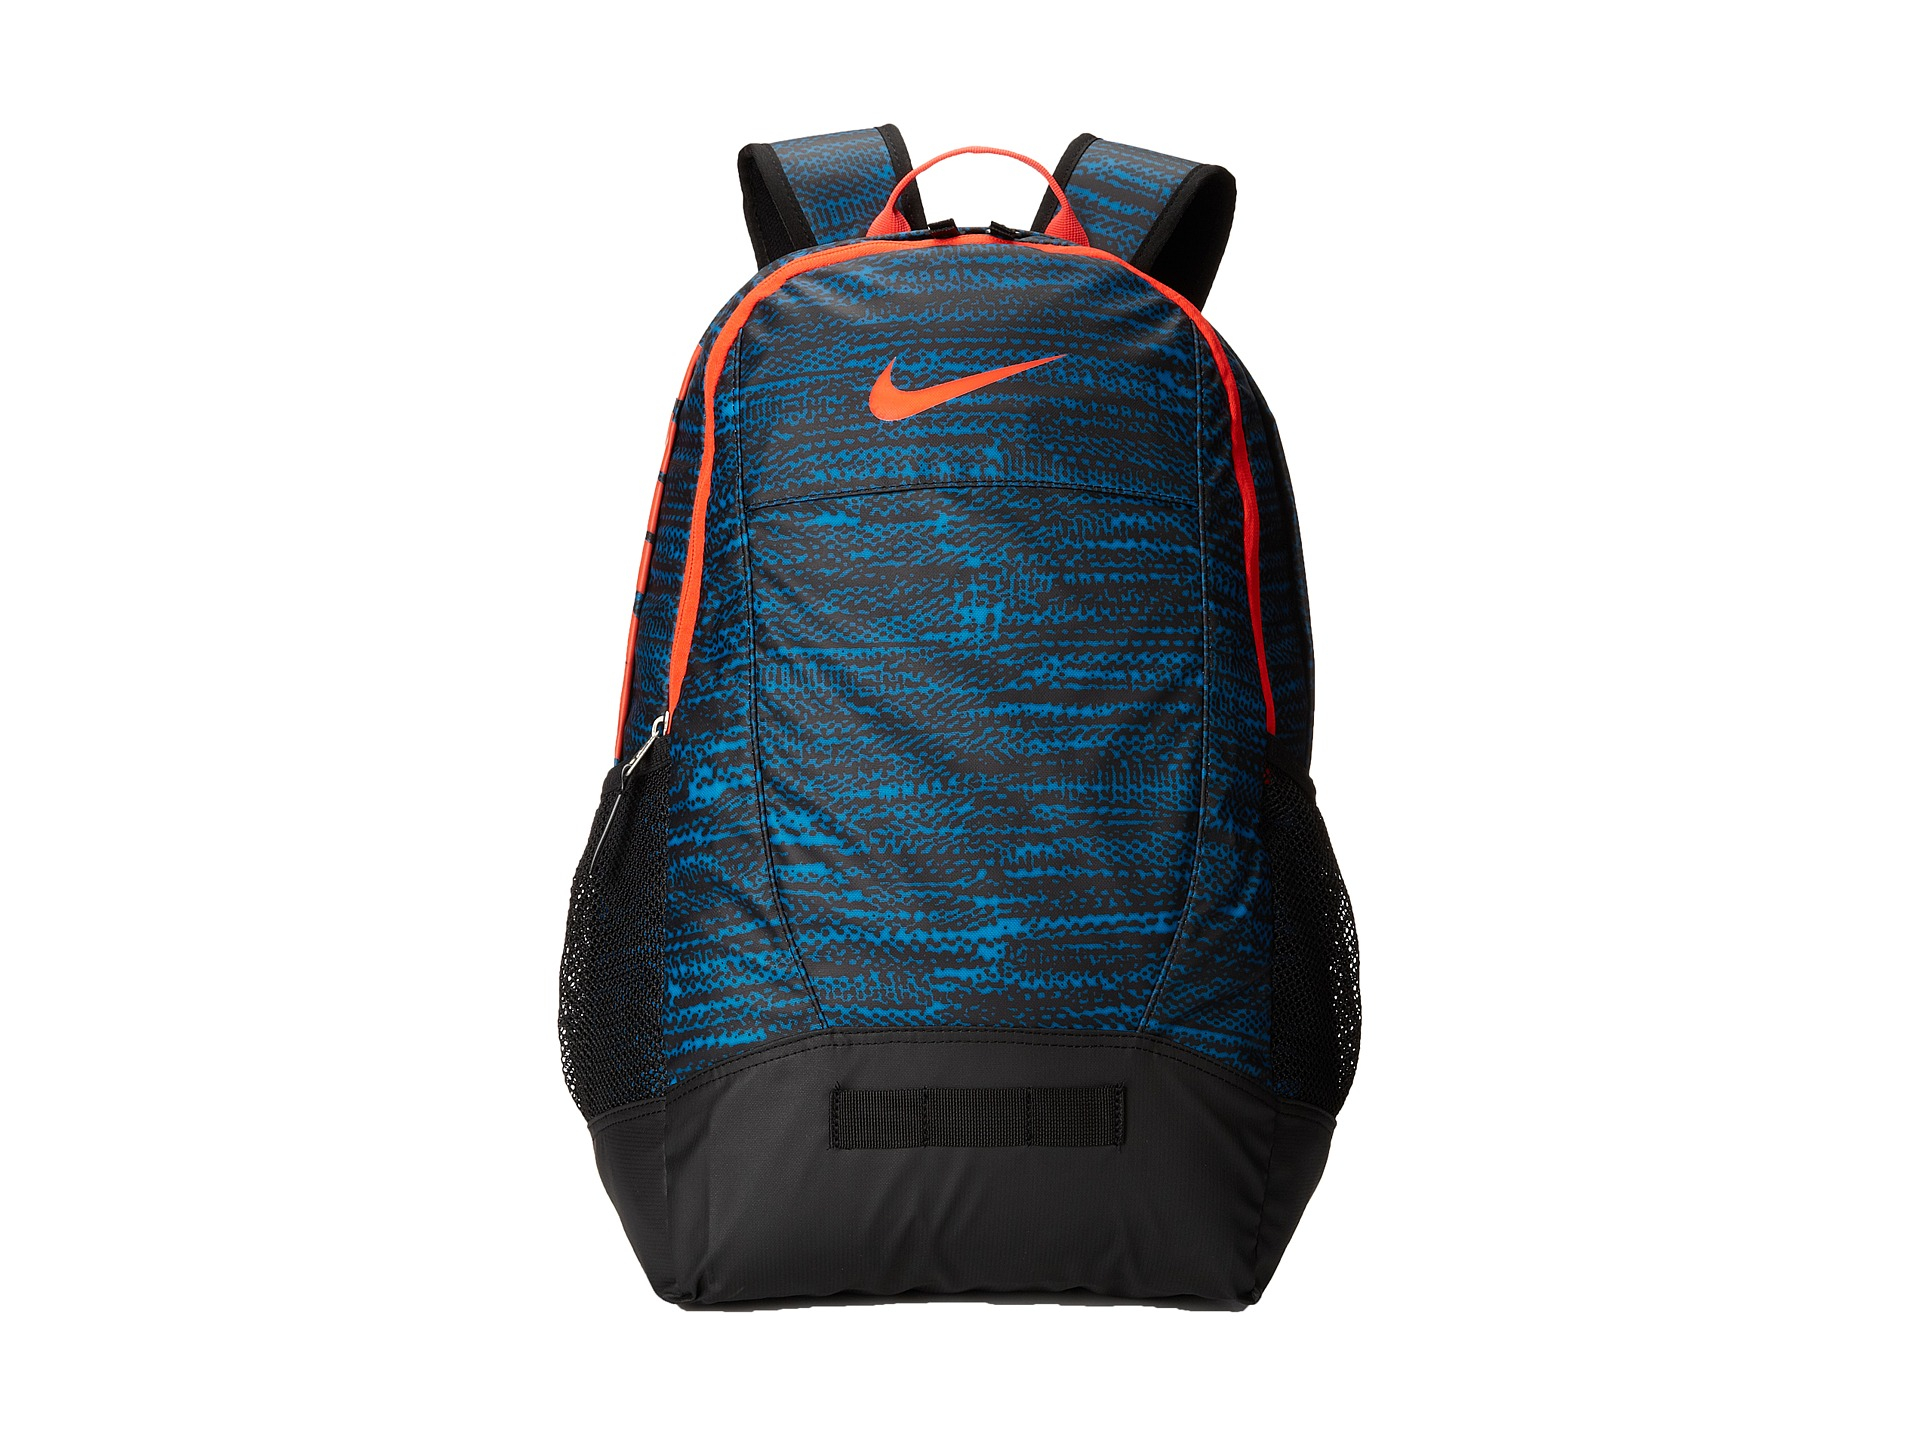 d44e337c9036 Lyst - Nike Team Training Medium Backpack - Graphic in Blue